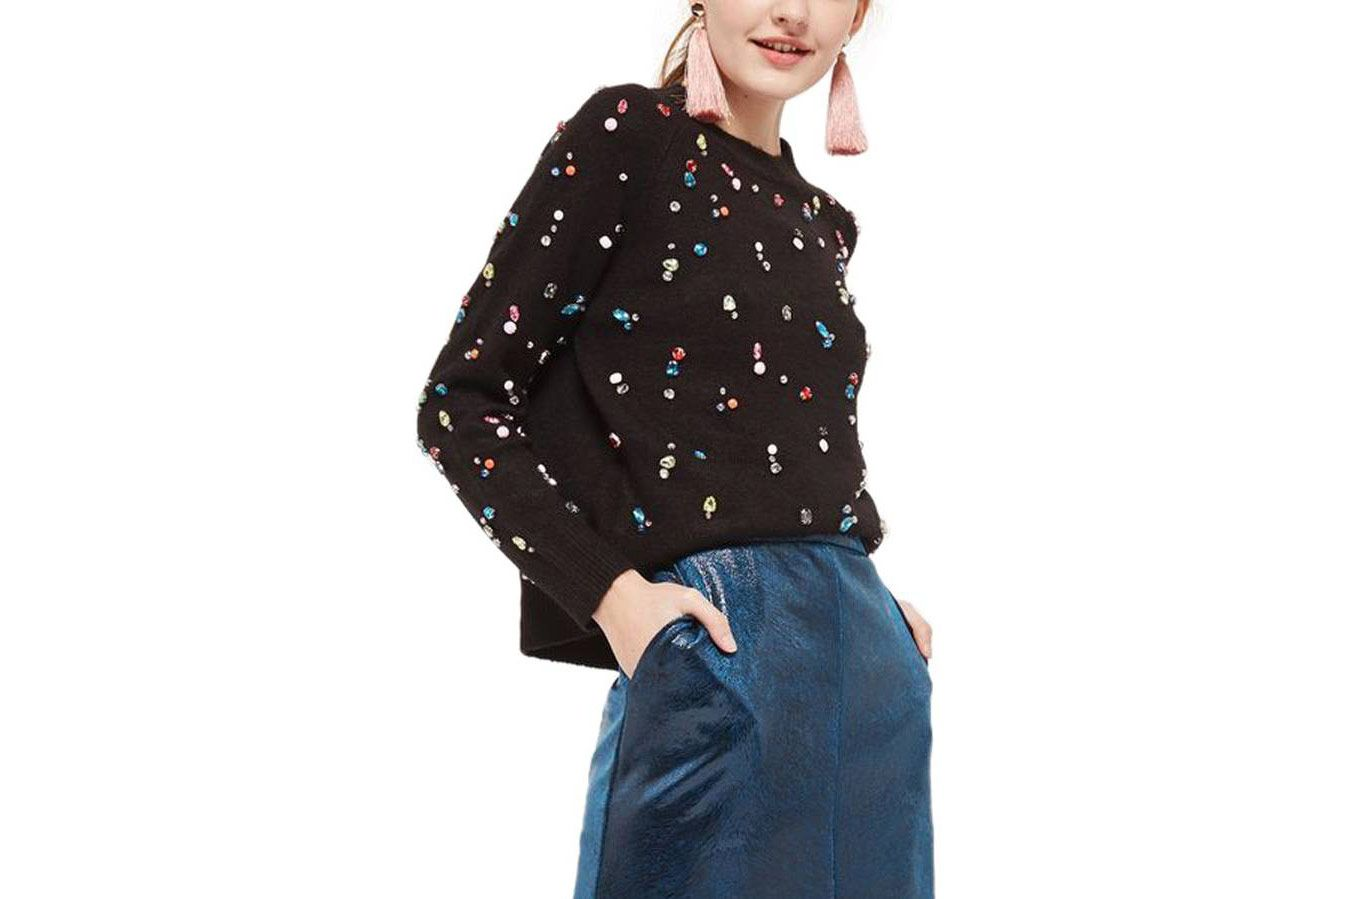 Topshop Jewelled Sweater